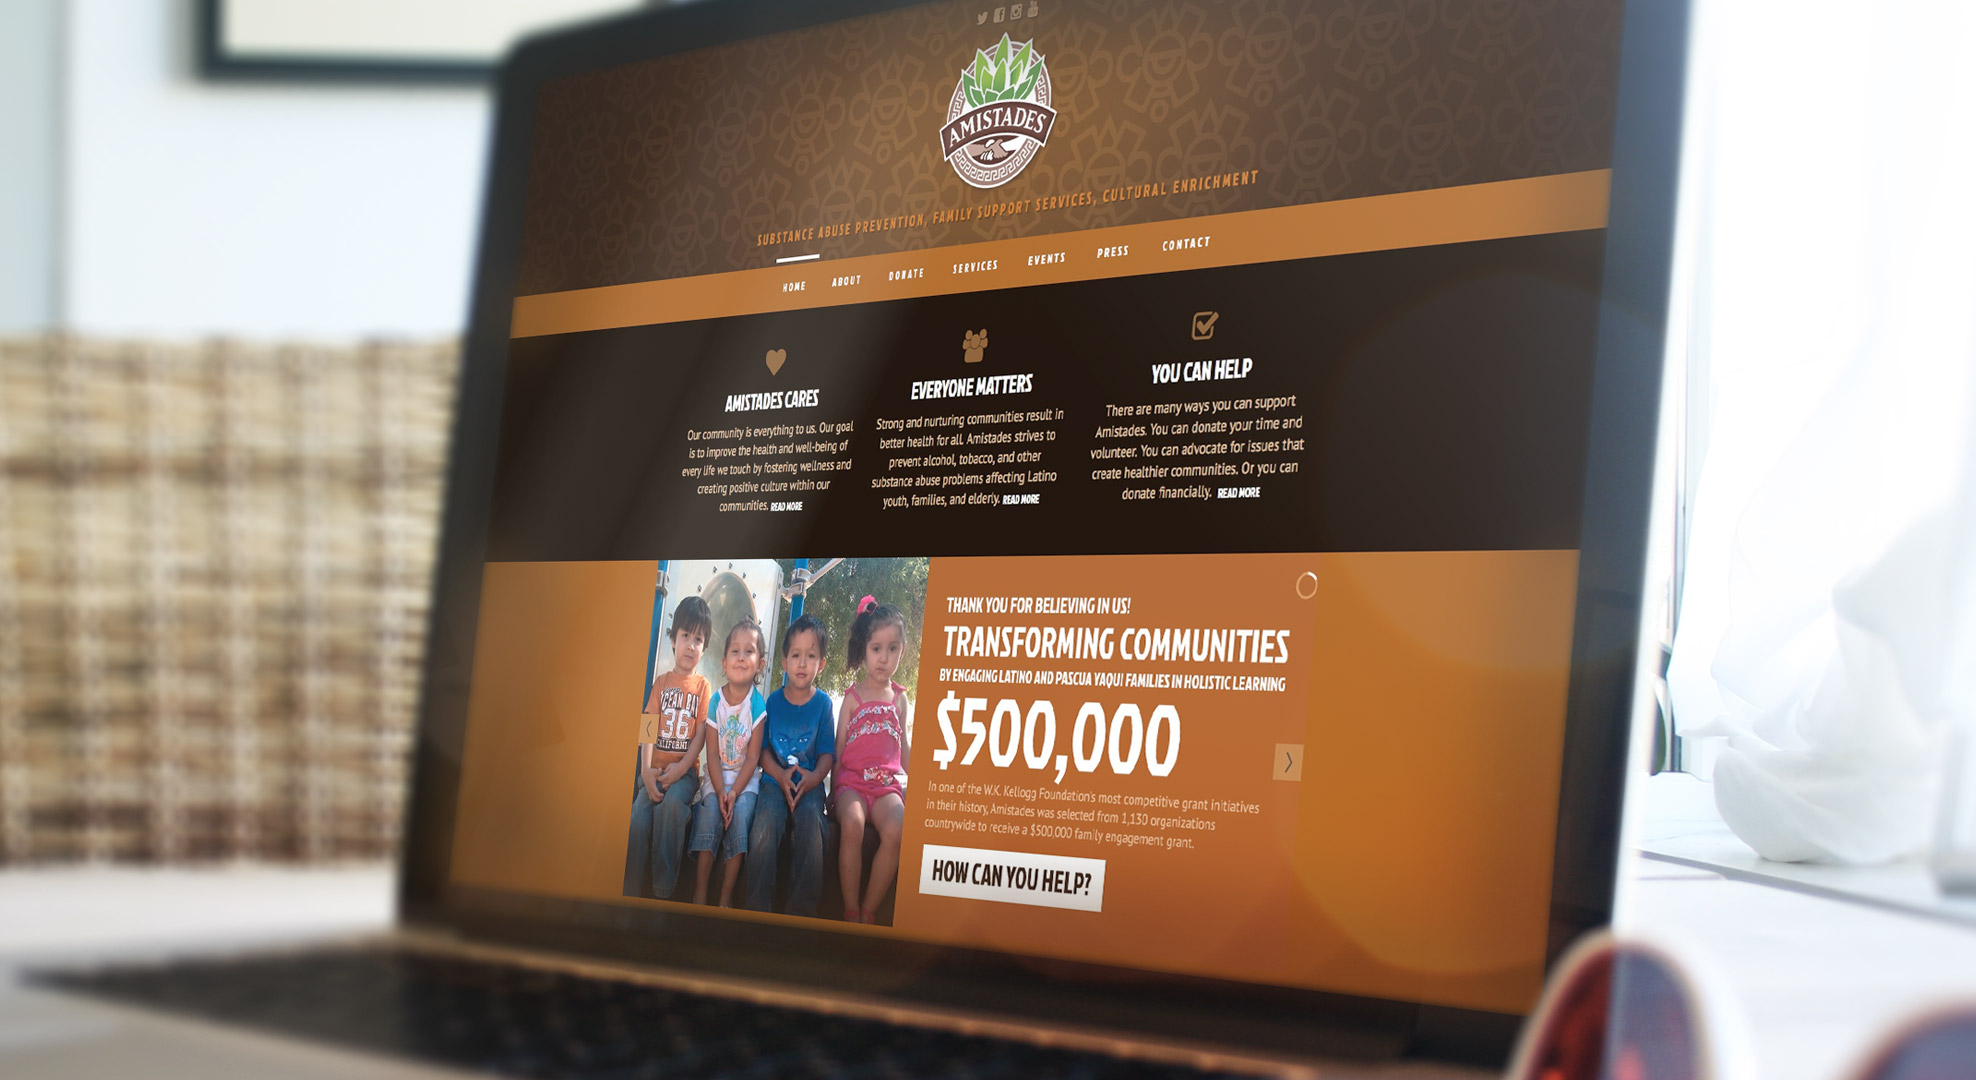 It was important to Amistades, a non-profit community development organization, to showcase their invaluable services as well as provide prominent avenues for visitor donation. Their new responsive WordPress website highlights their support programs and displays calls-to-action to encourage community support.